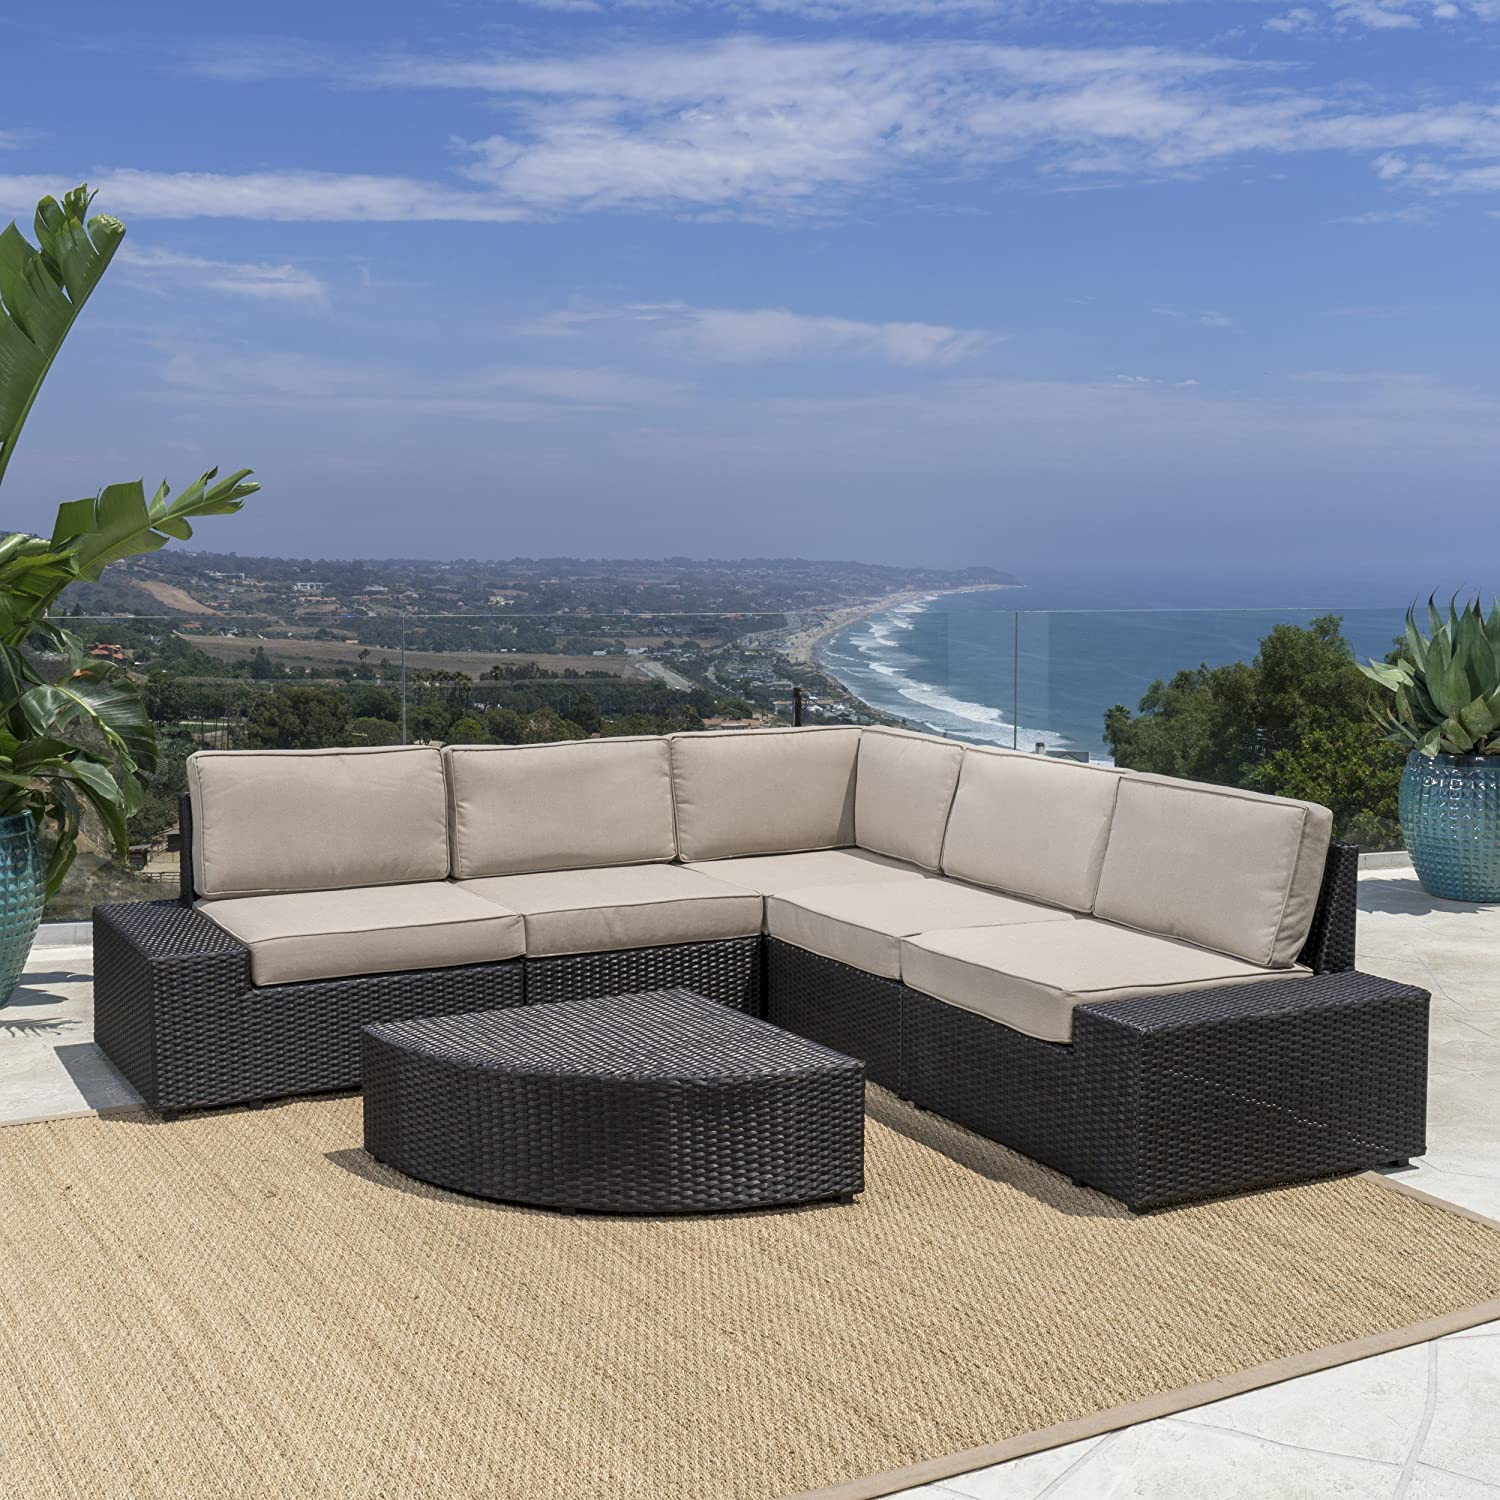 Amazon Reddington Outdoor Patio Furniture 6 Piece Sectional